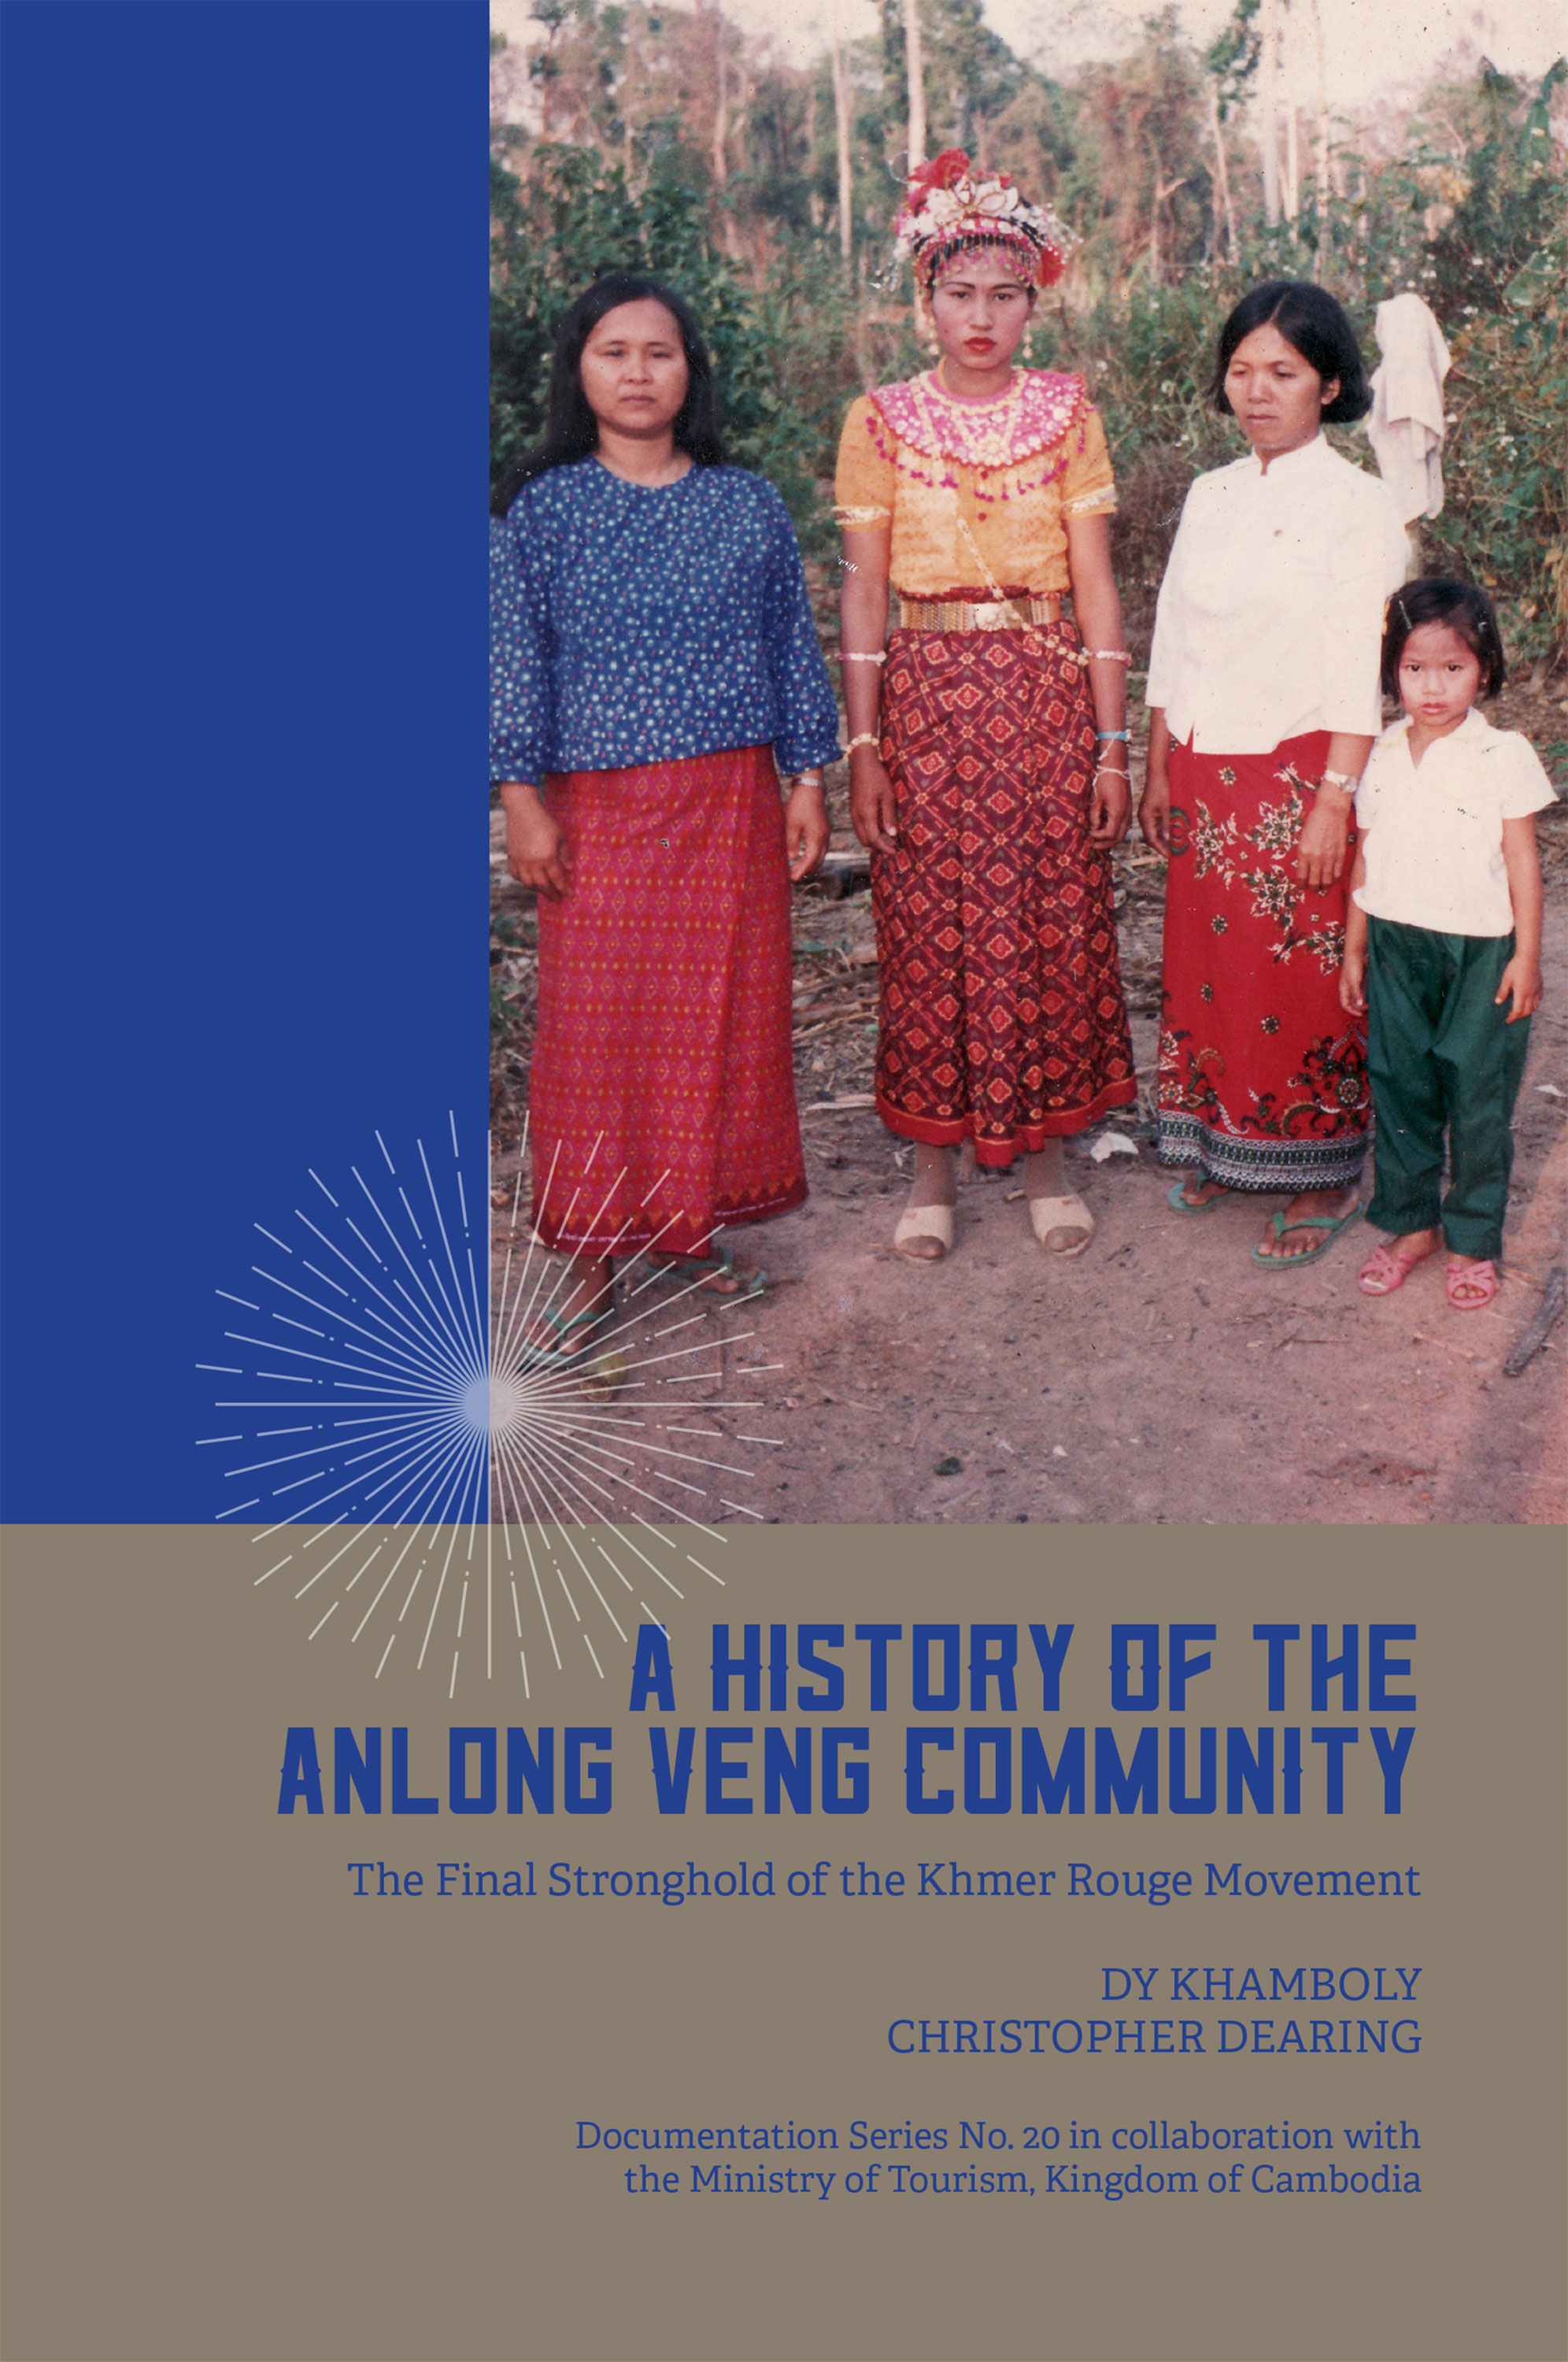 A-History-of-The-Anlong-Veng-Community1